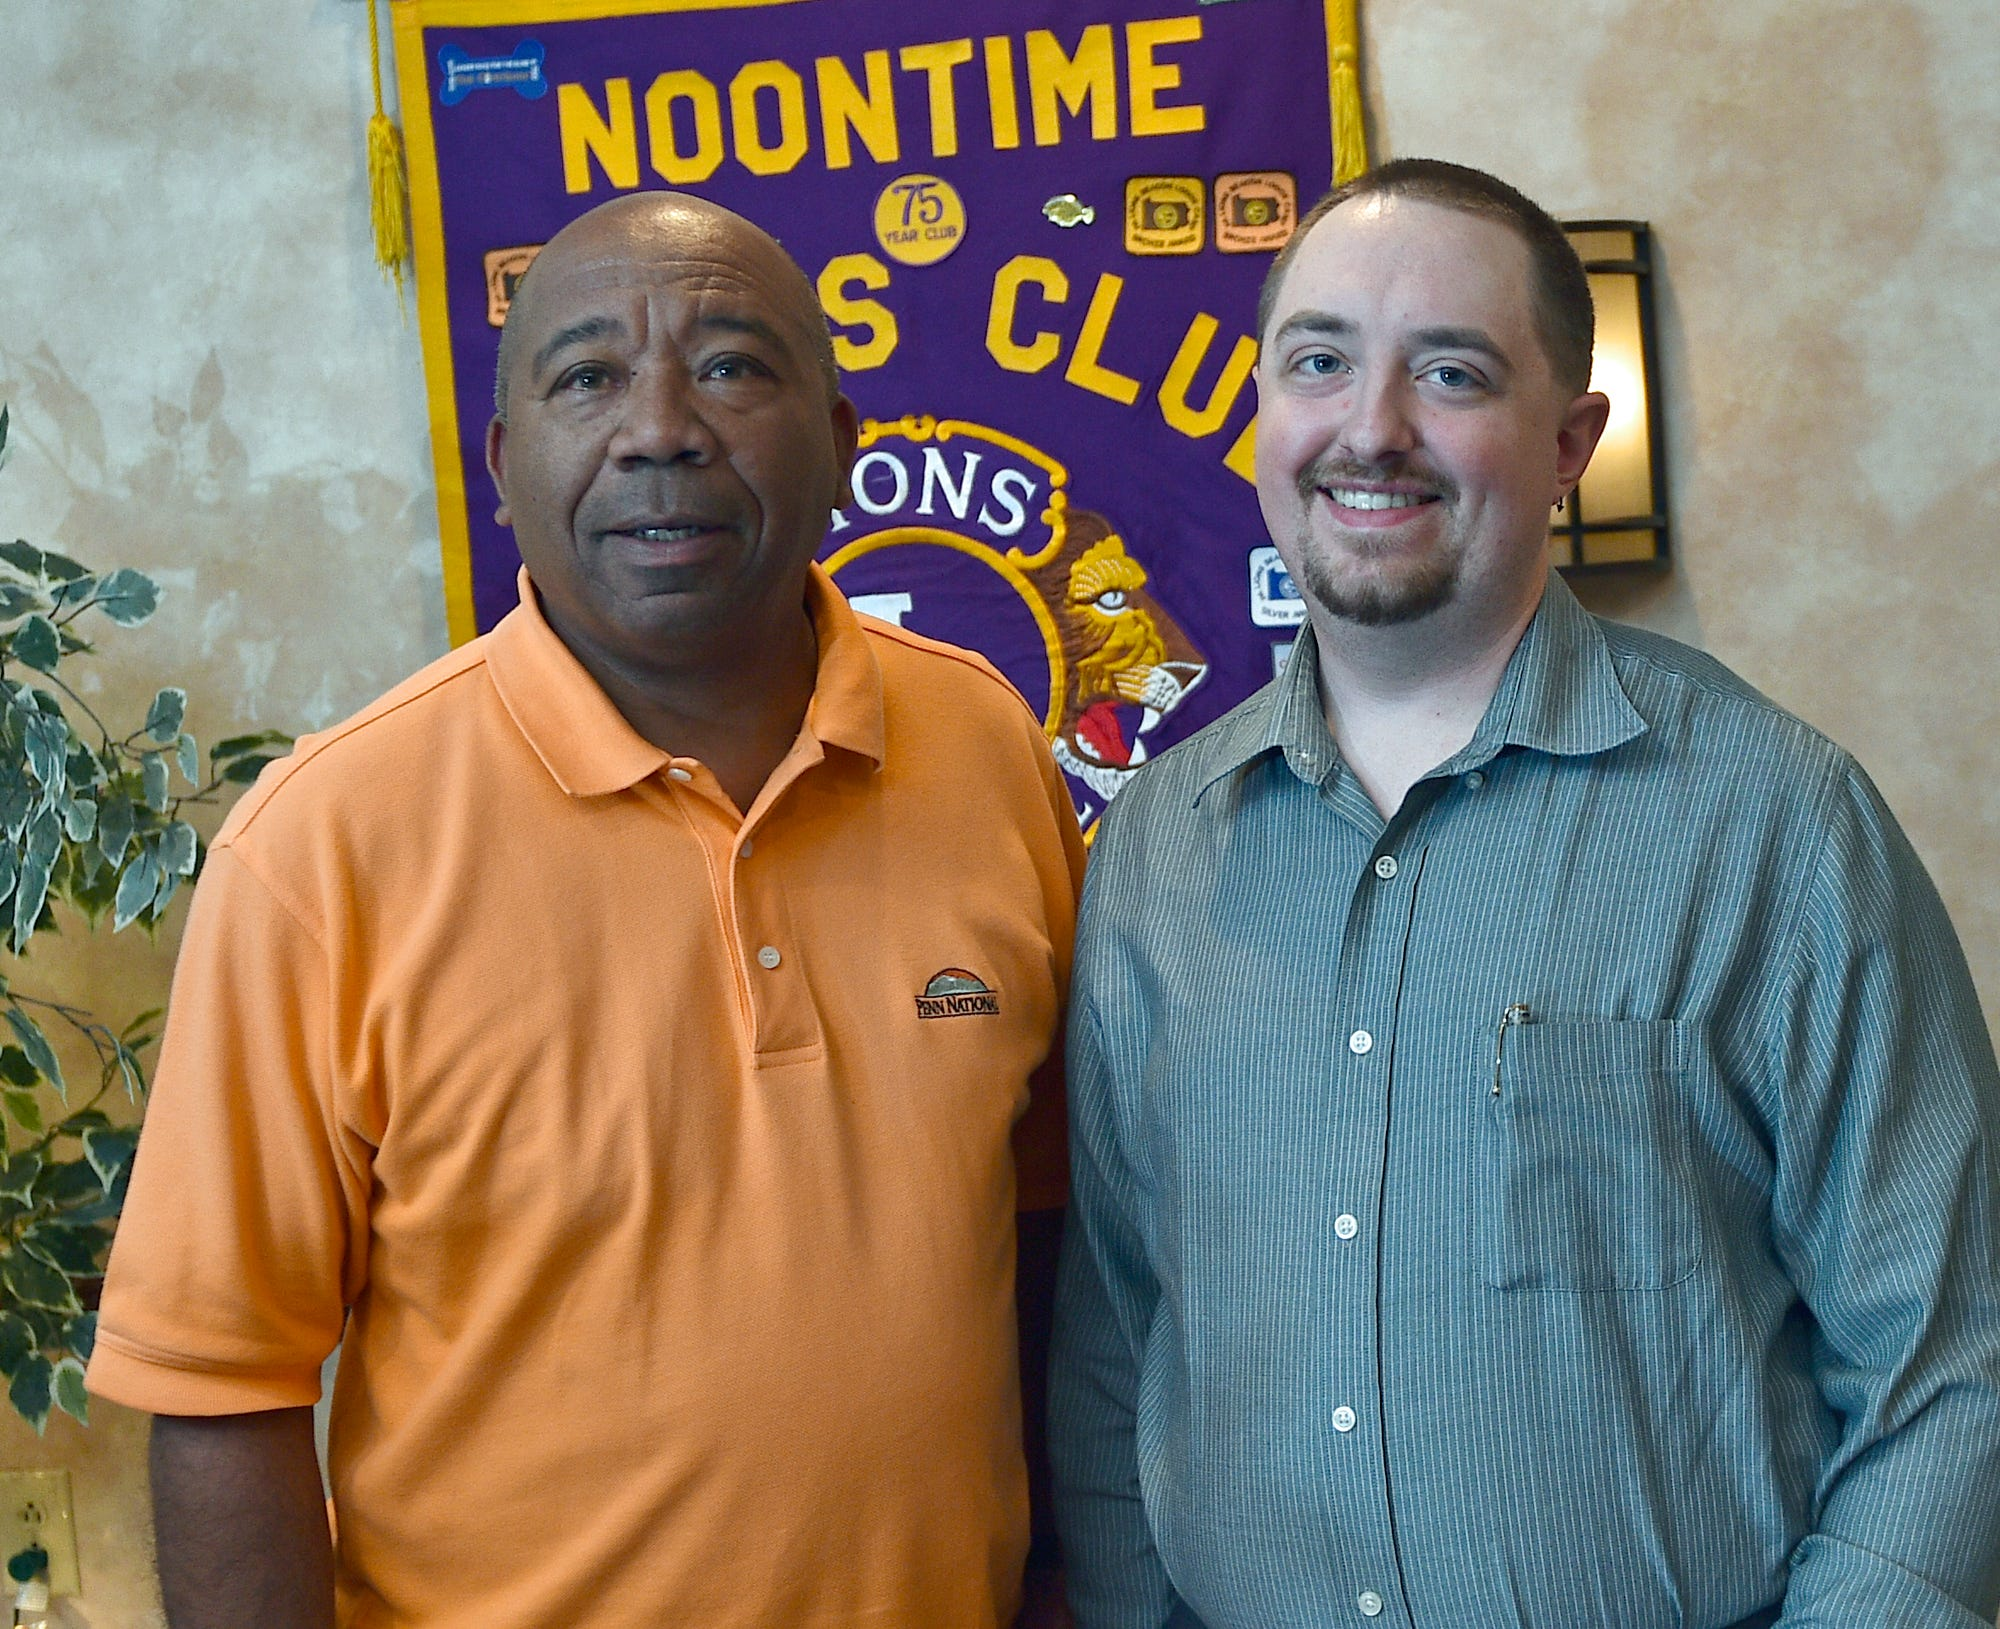 Noontime Lions Club Can Do More Good Thanks To The Theft